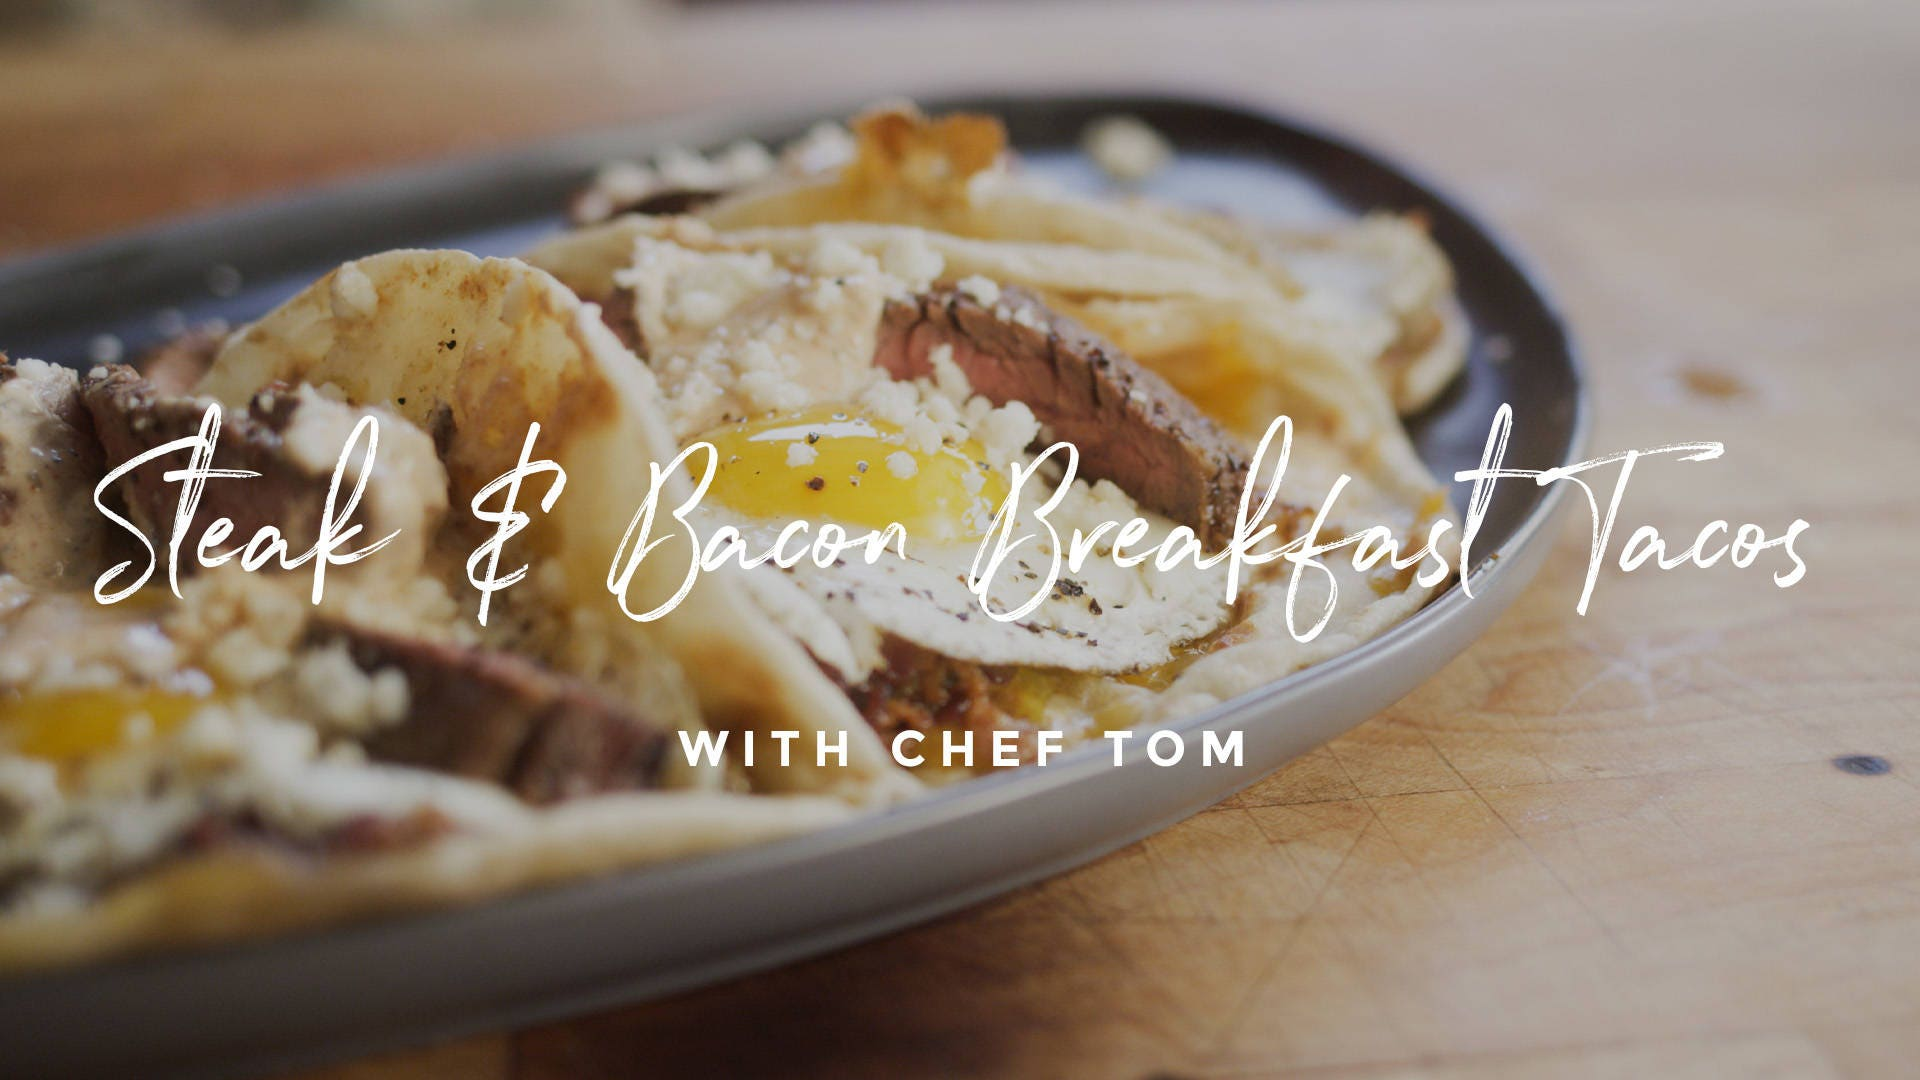 How to make Steak & Bacon Breakfast Tacos